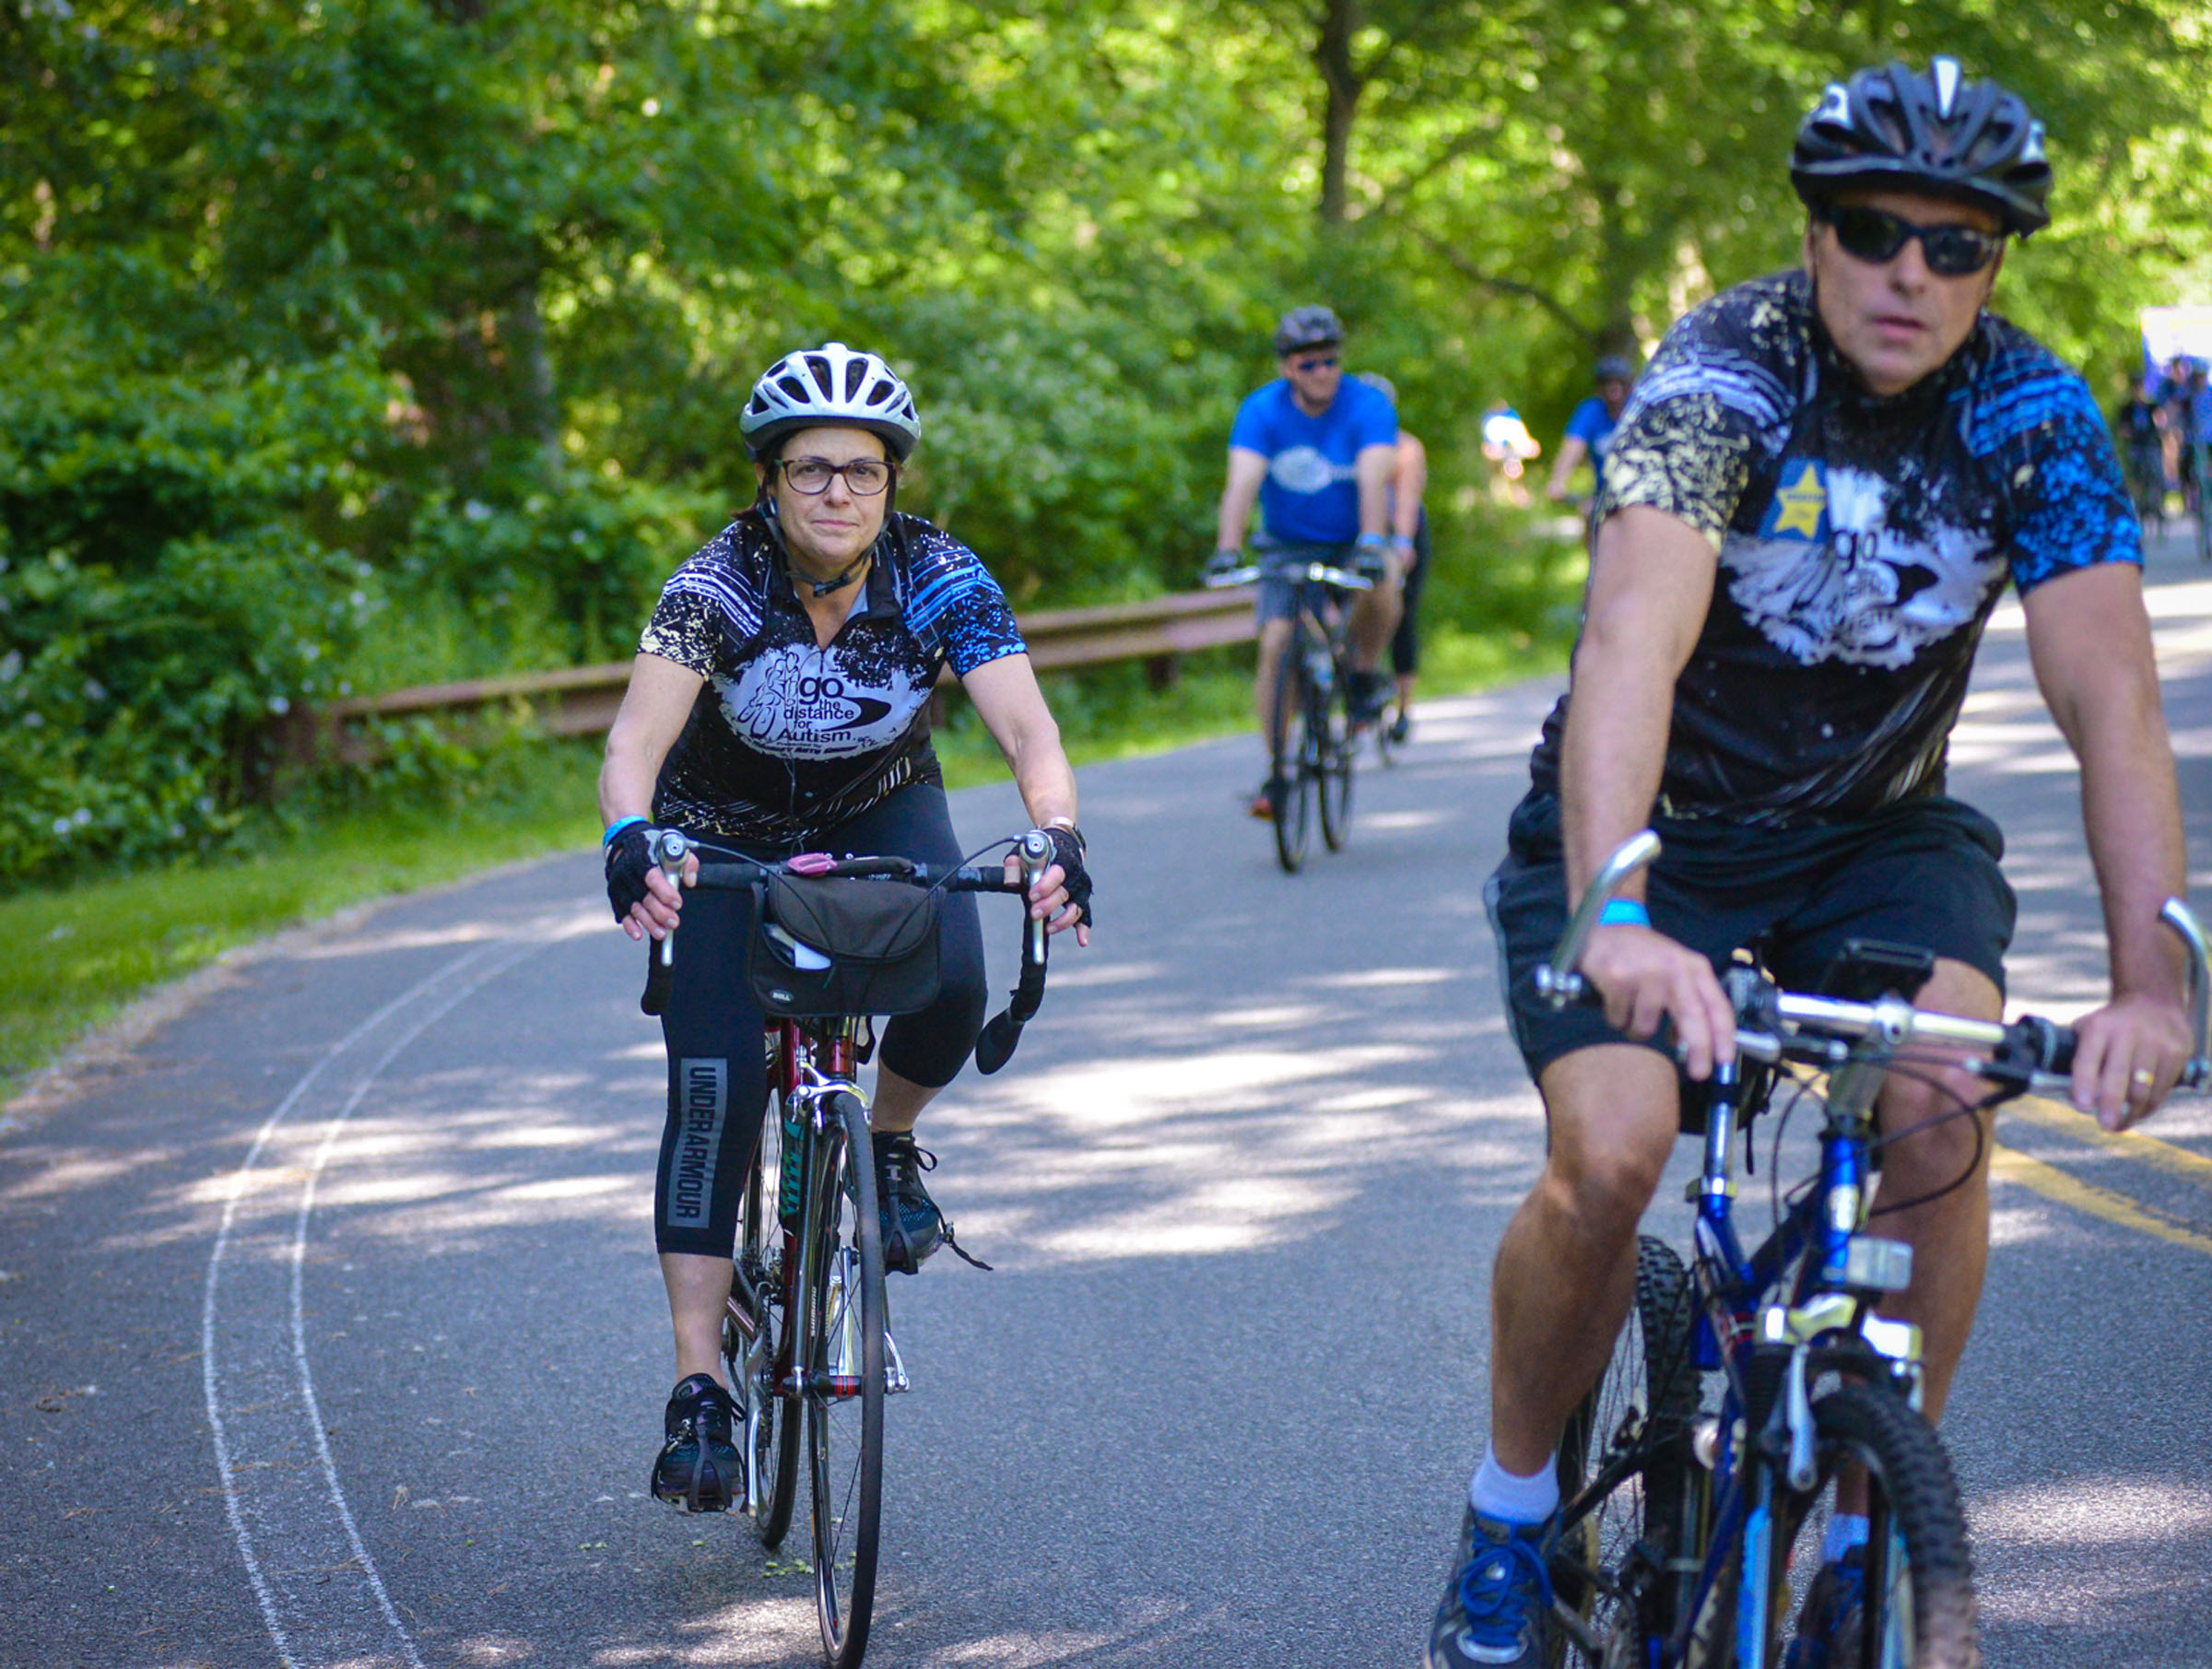 2017-06-04 GTD4A Charity Bike Ride - BCC - Paramus NJ-1899.jpg